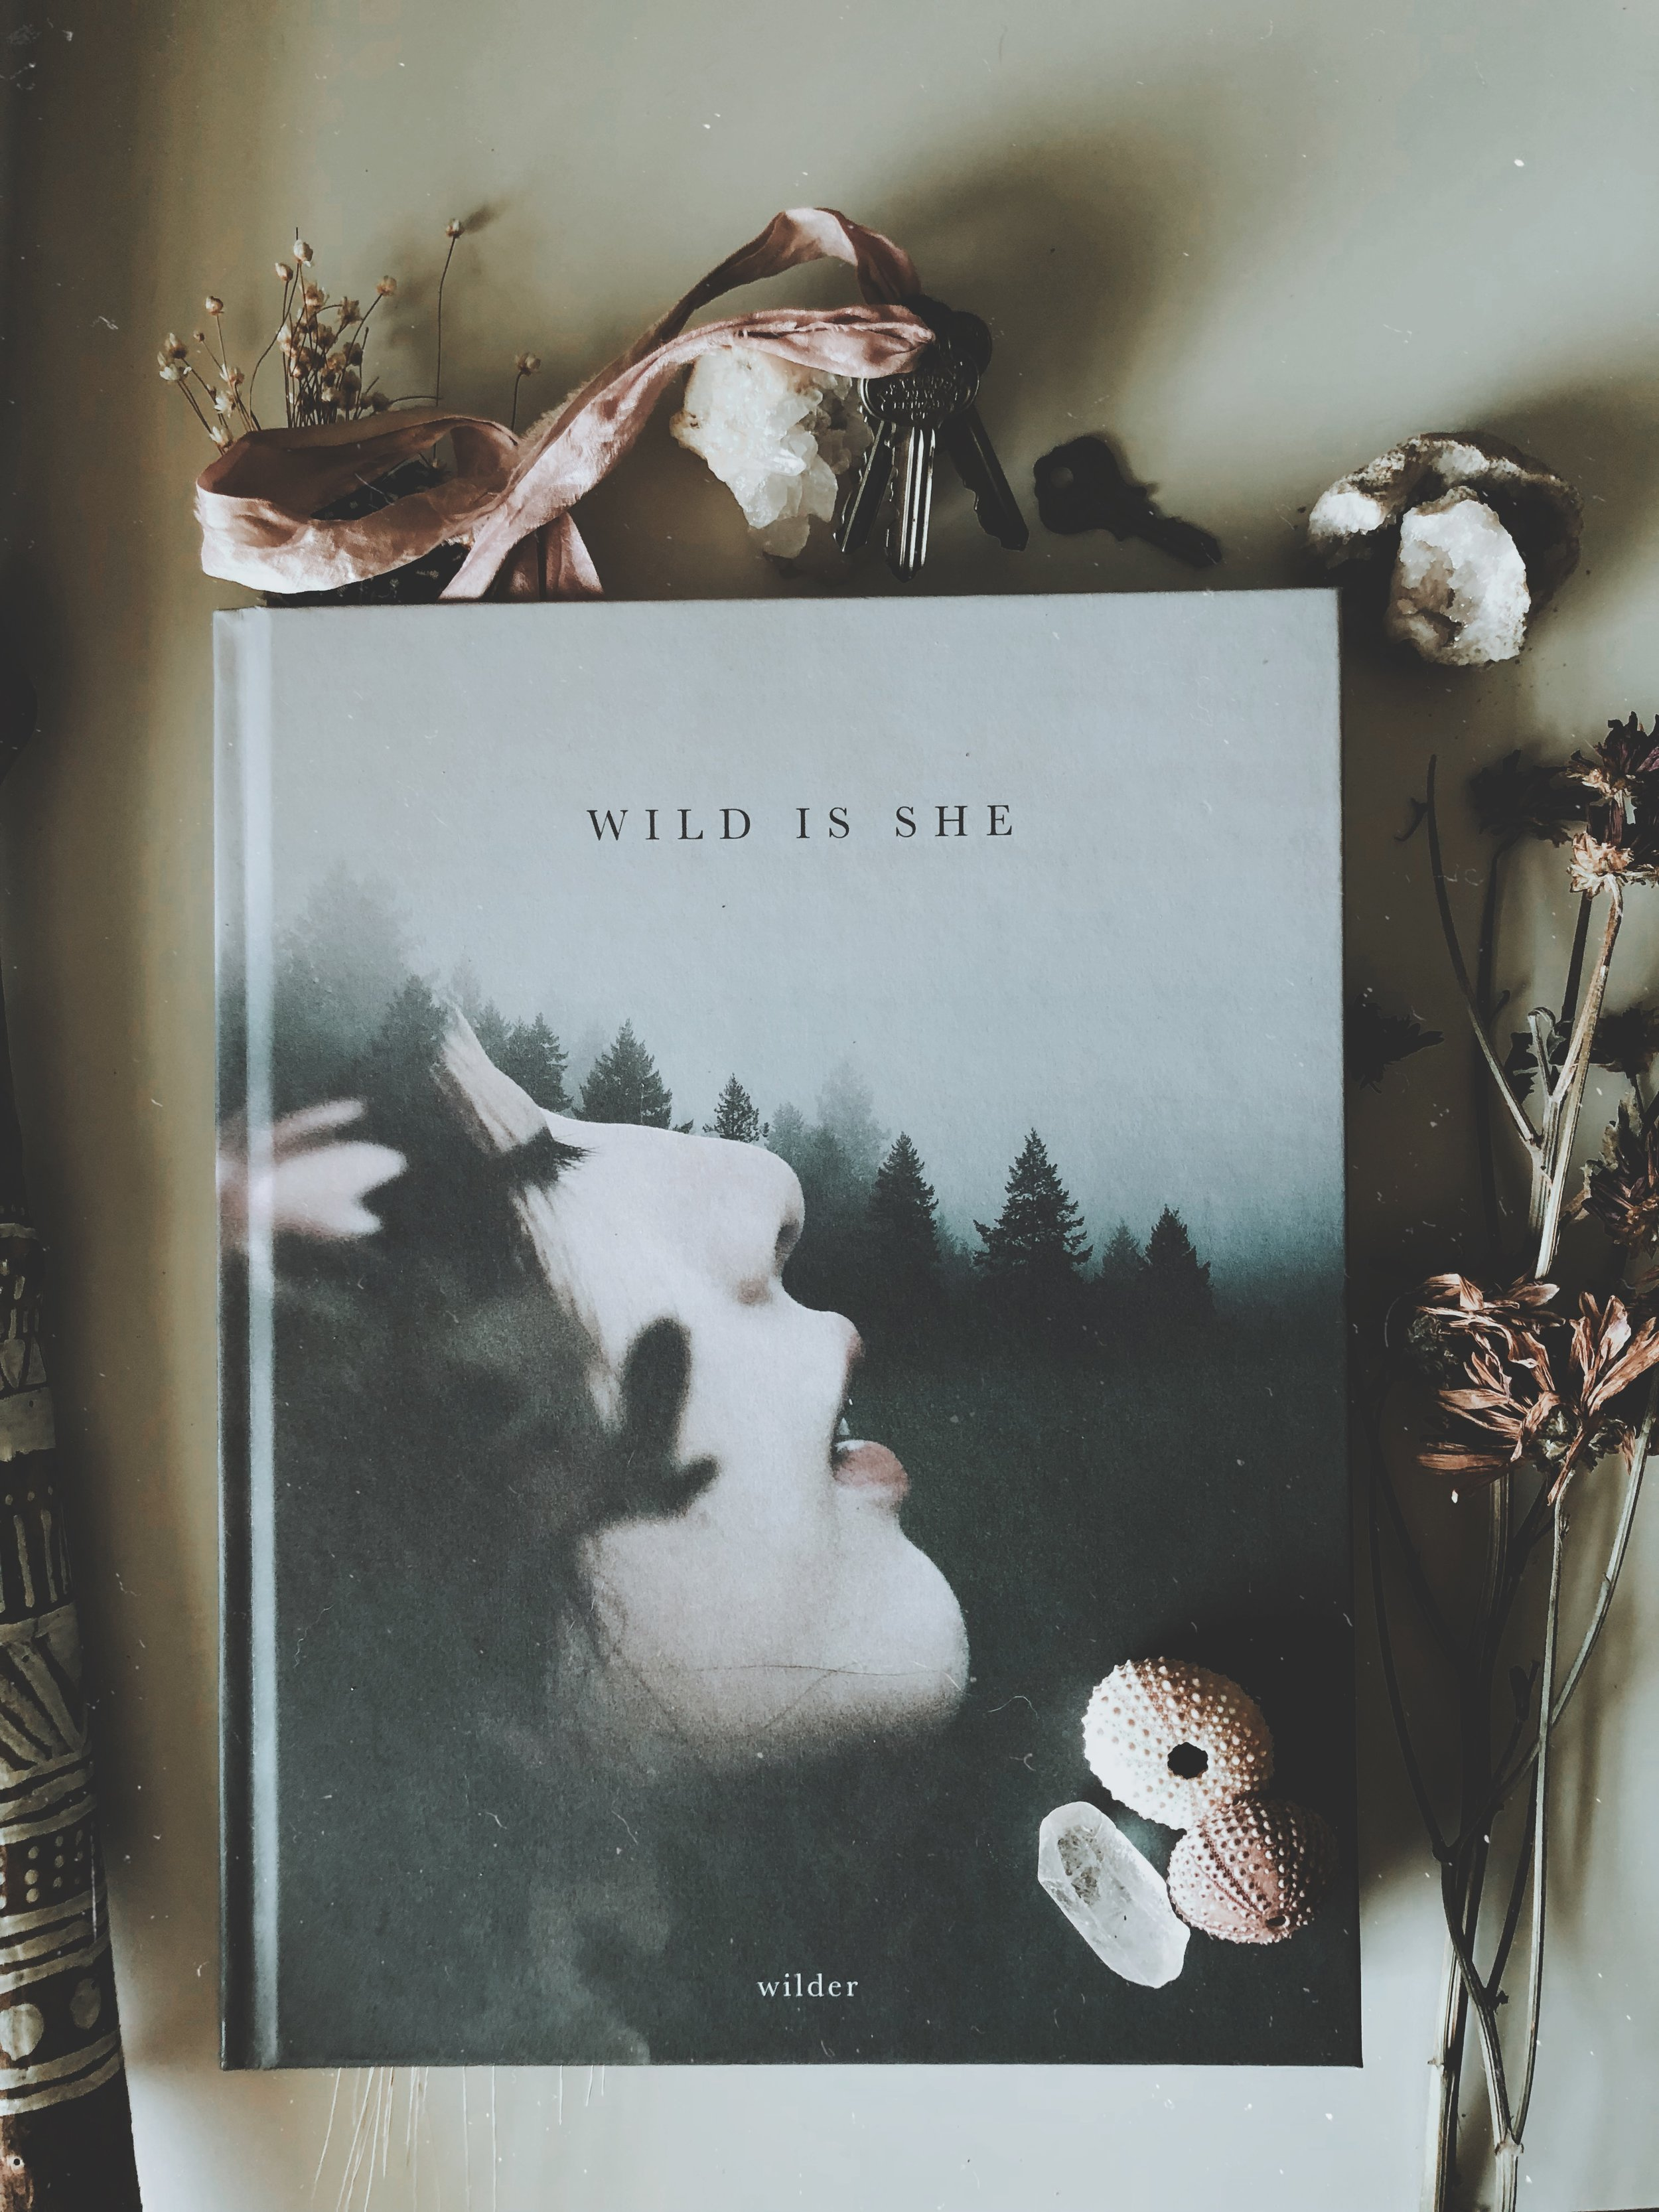 Wild is She - wild is she is a poetic collection of imagery and words joined together to tell a story of beauty and diversity, discovering the wild and unknown. in celebration of the imperfect, charming & peculiar, wilder explores the art of adventure and leaves it to be found in the palms of your hands.•